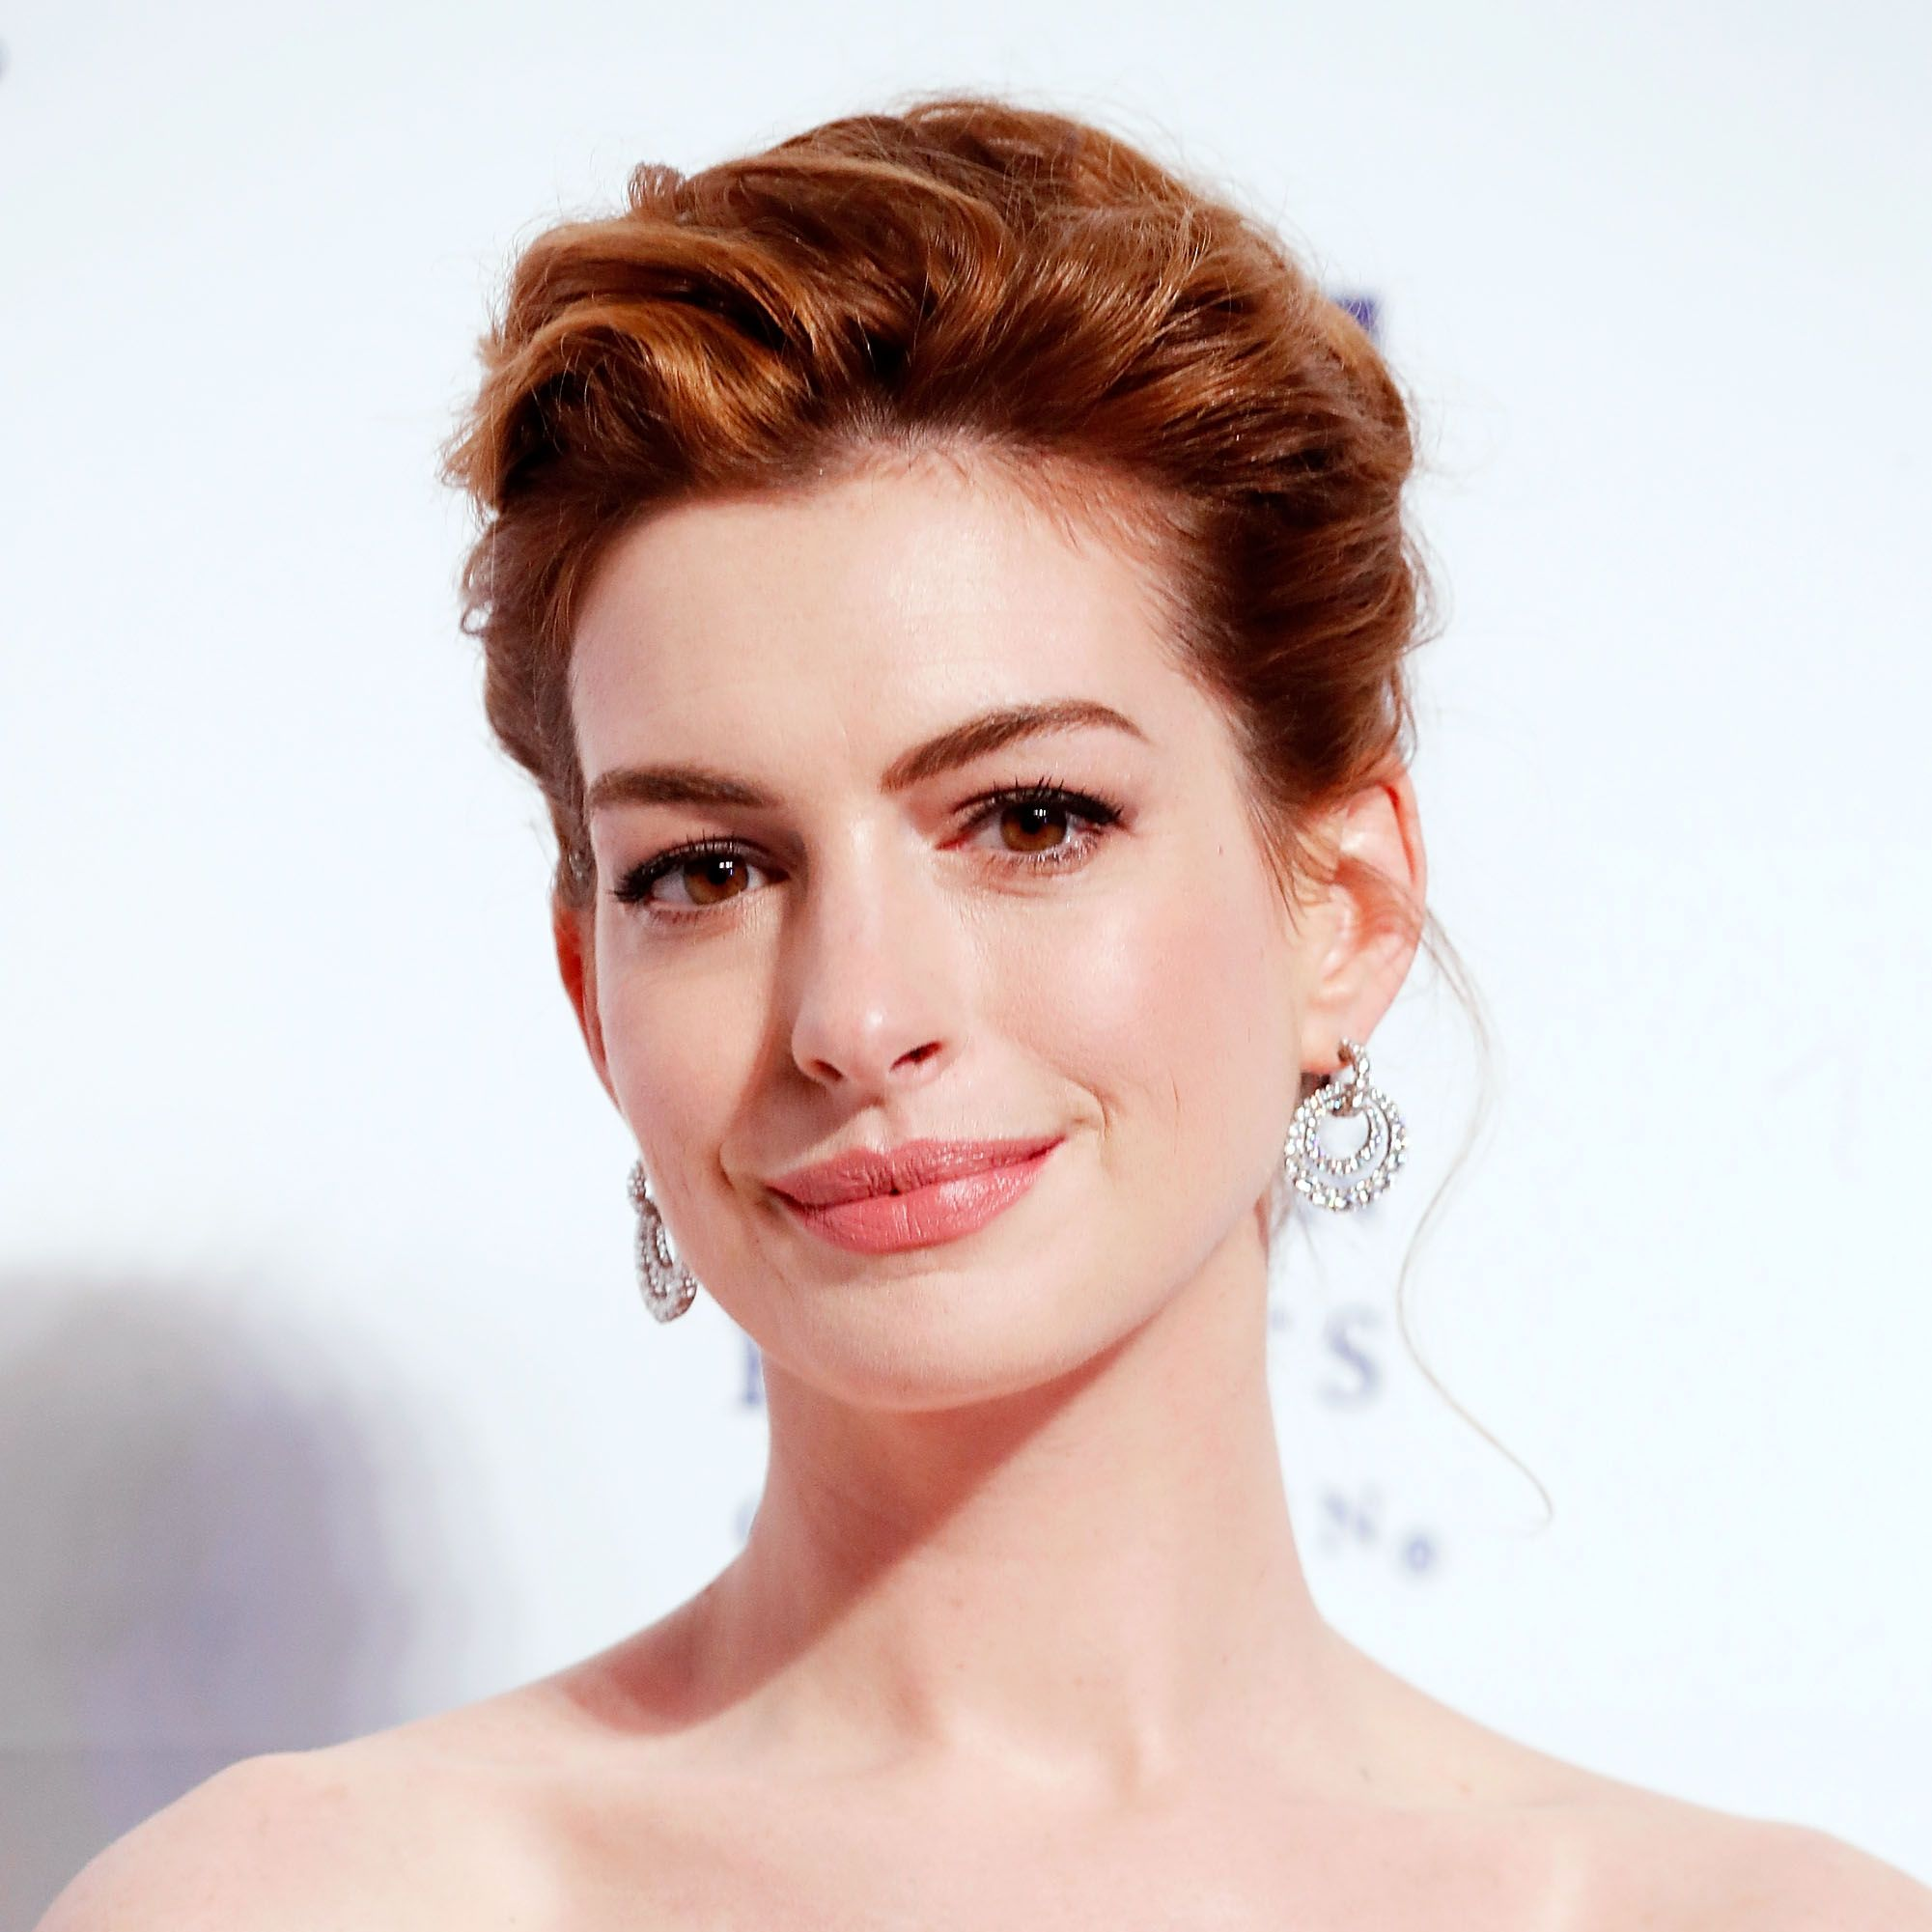 Anne Hathaway opens up about infertility while announcing her second pregnancy